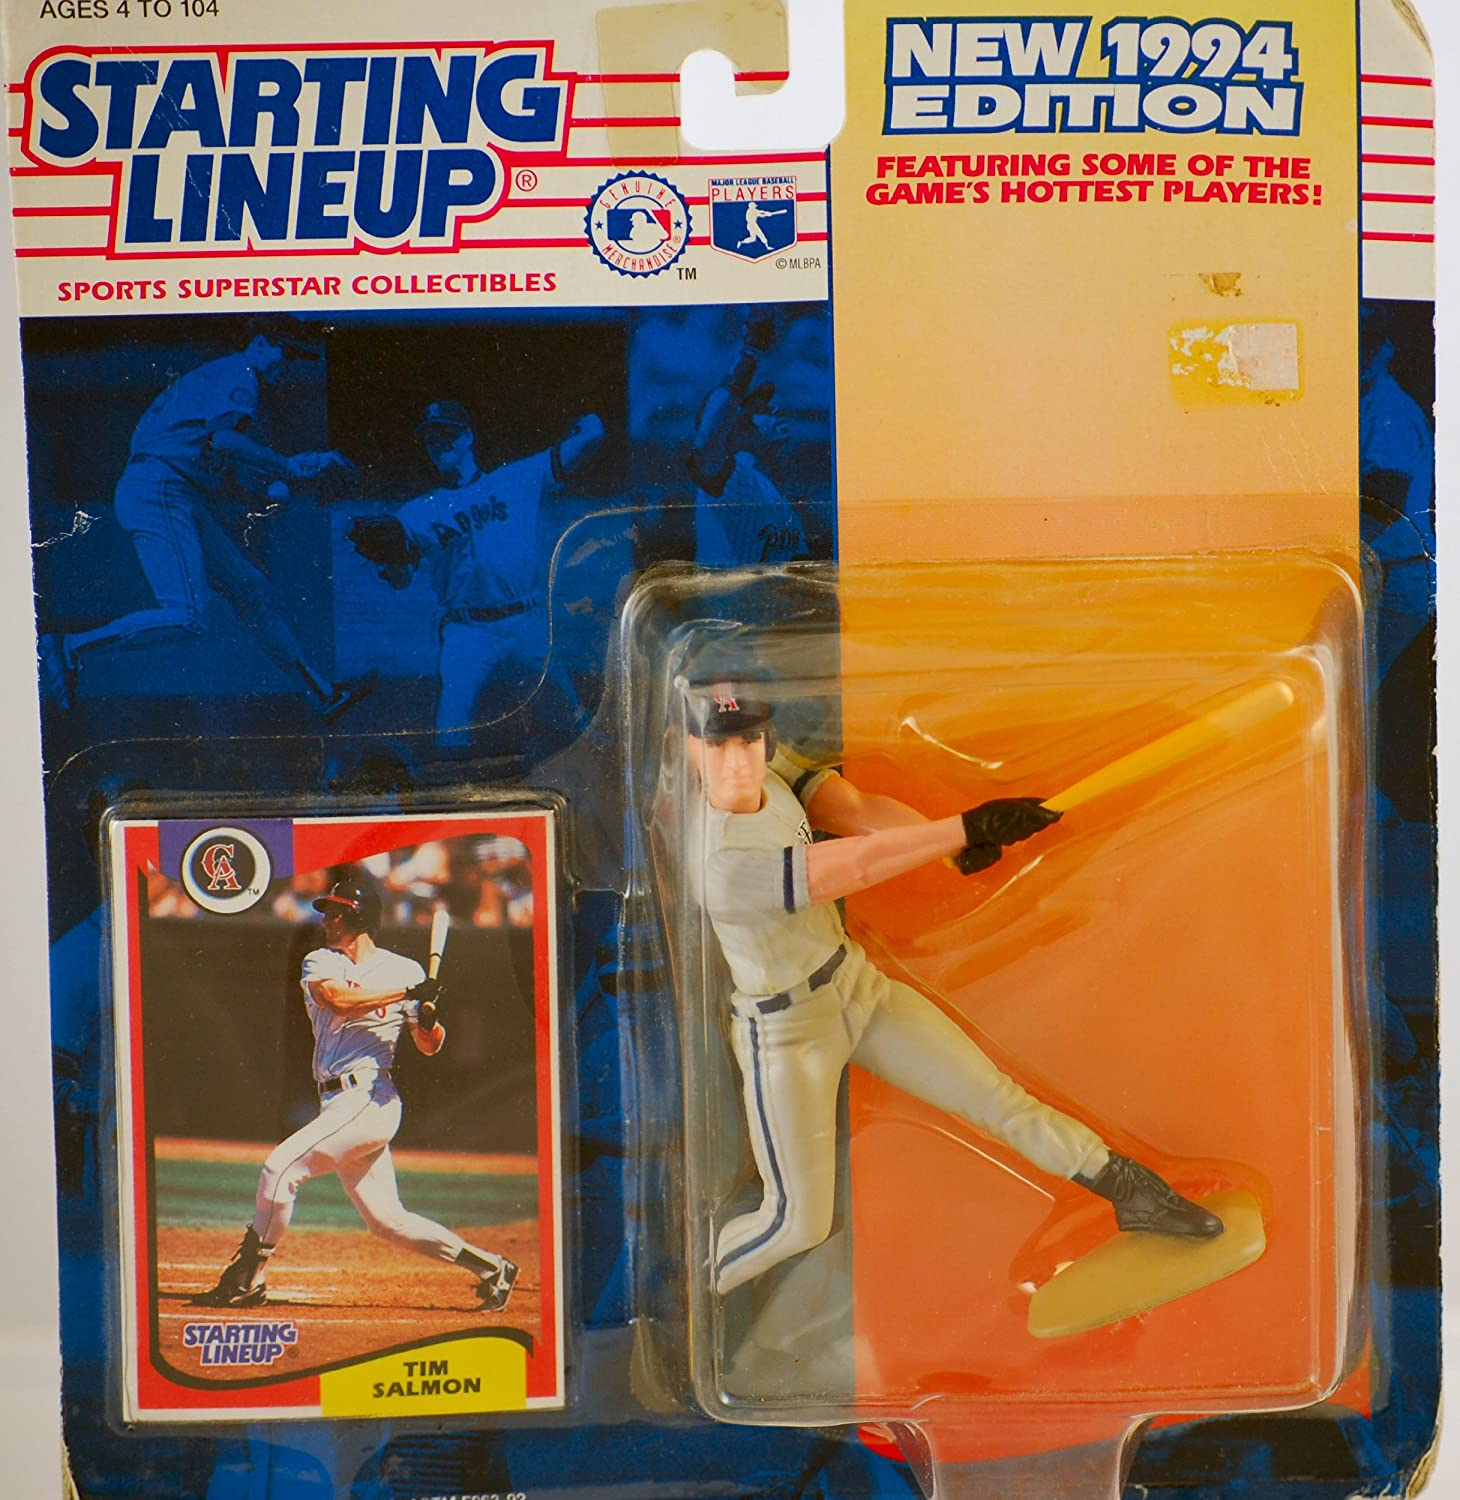 Vintage Action Figure w// Trading Card Starting Lineup Collectible Hasbro California Angels Kenner Limited Edition MLB 1994 Tim Salmon #15